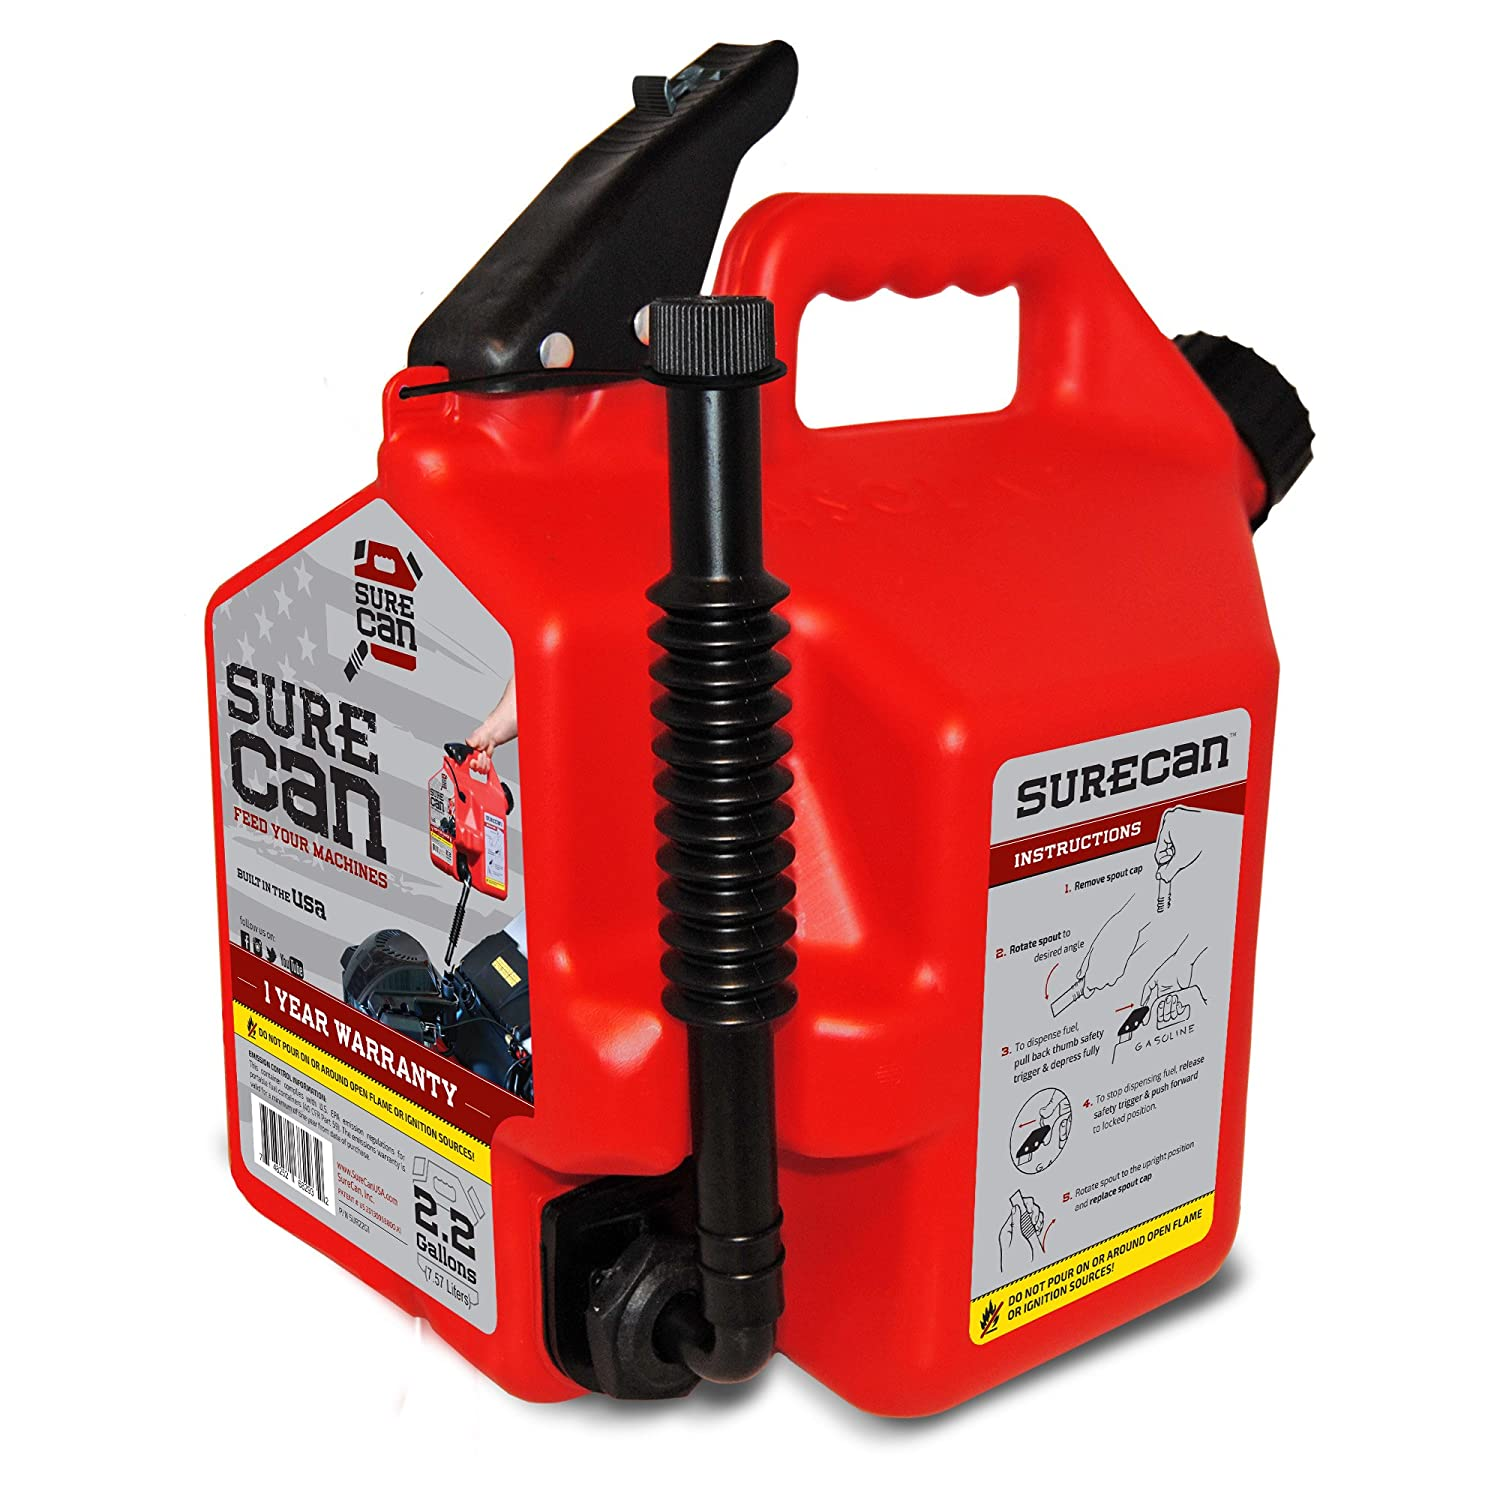 Surecan CRSUR22G1 Gasoline Can, 2.2 Gallon Surecan Inc